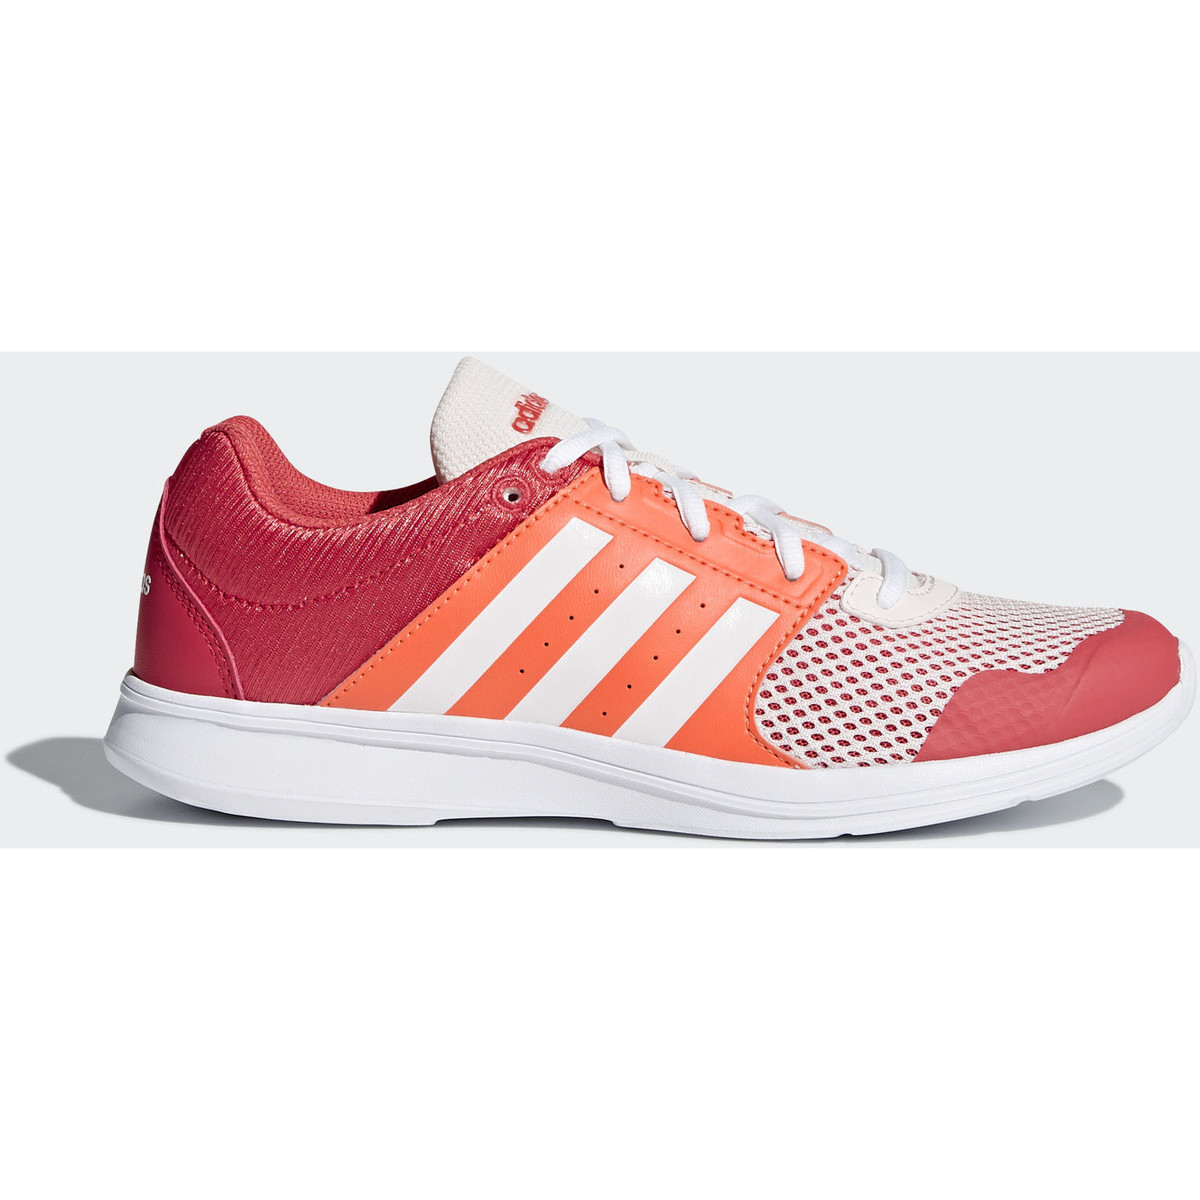 Adidas Essentials Essential Fun 20 Schuh Weiß / Orange - Schuhe Sneaker Low Damen 34,90 €